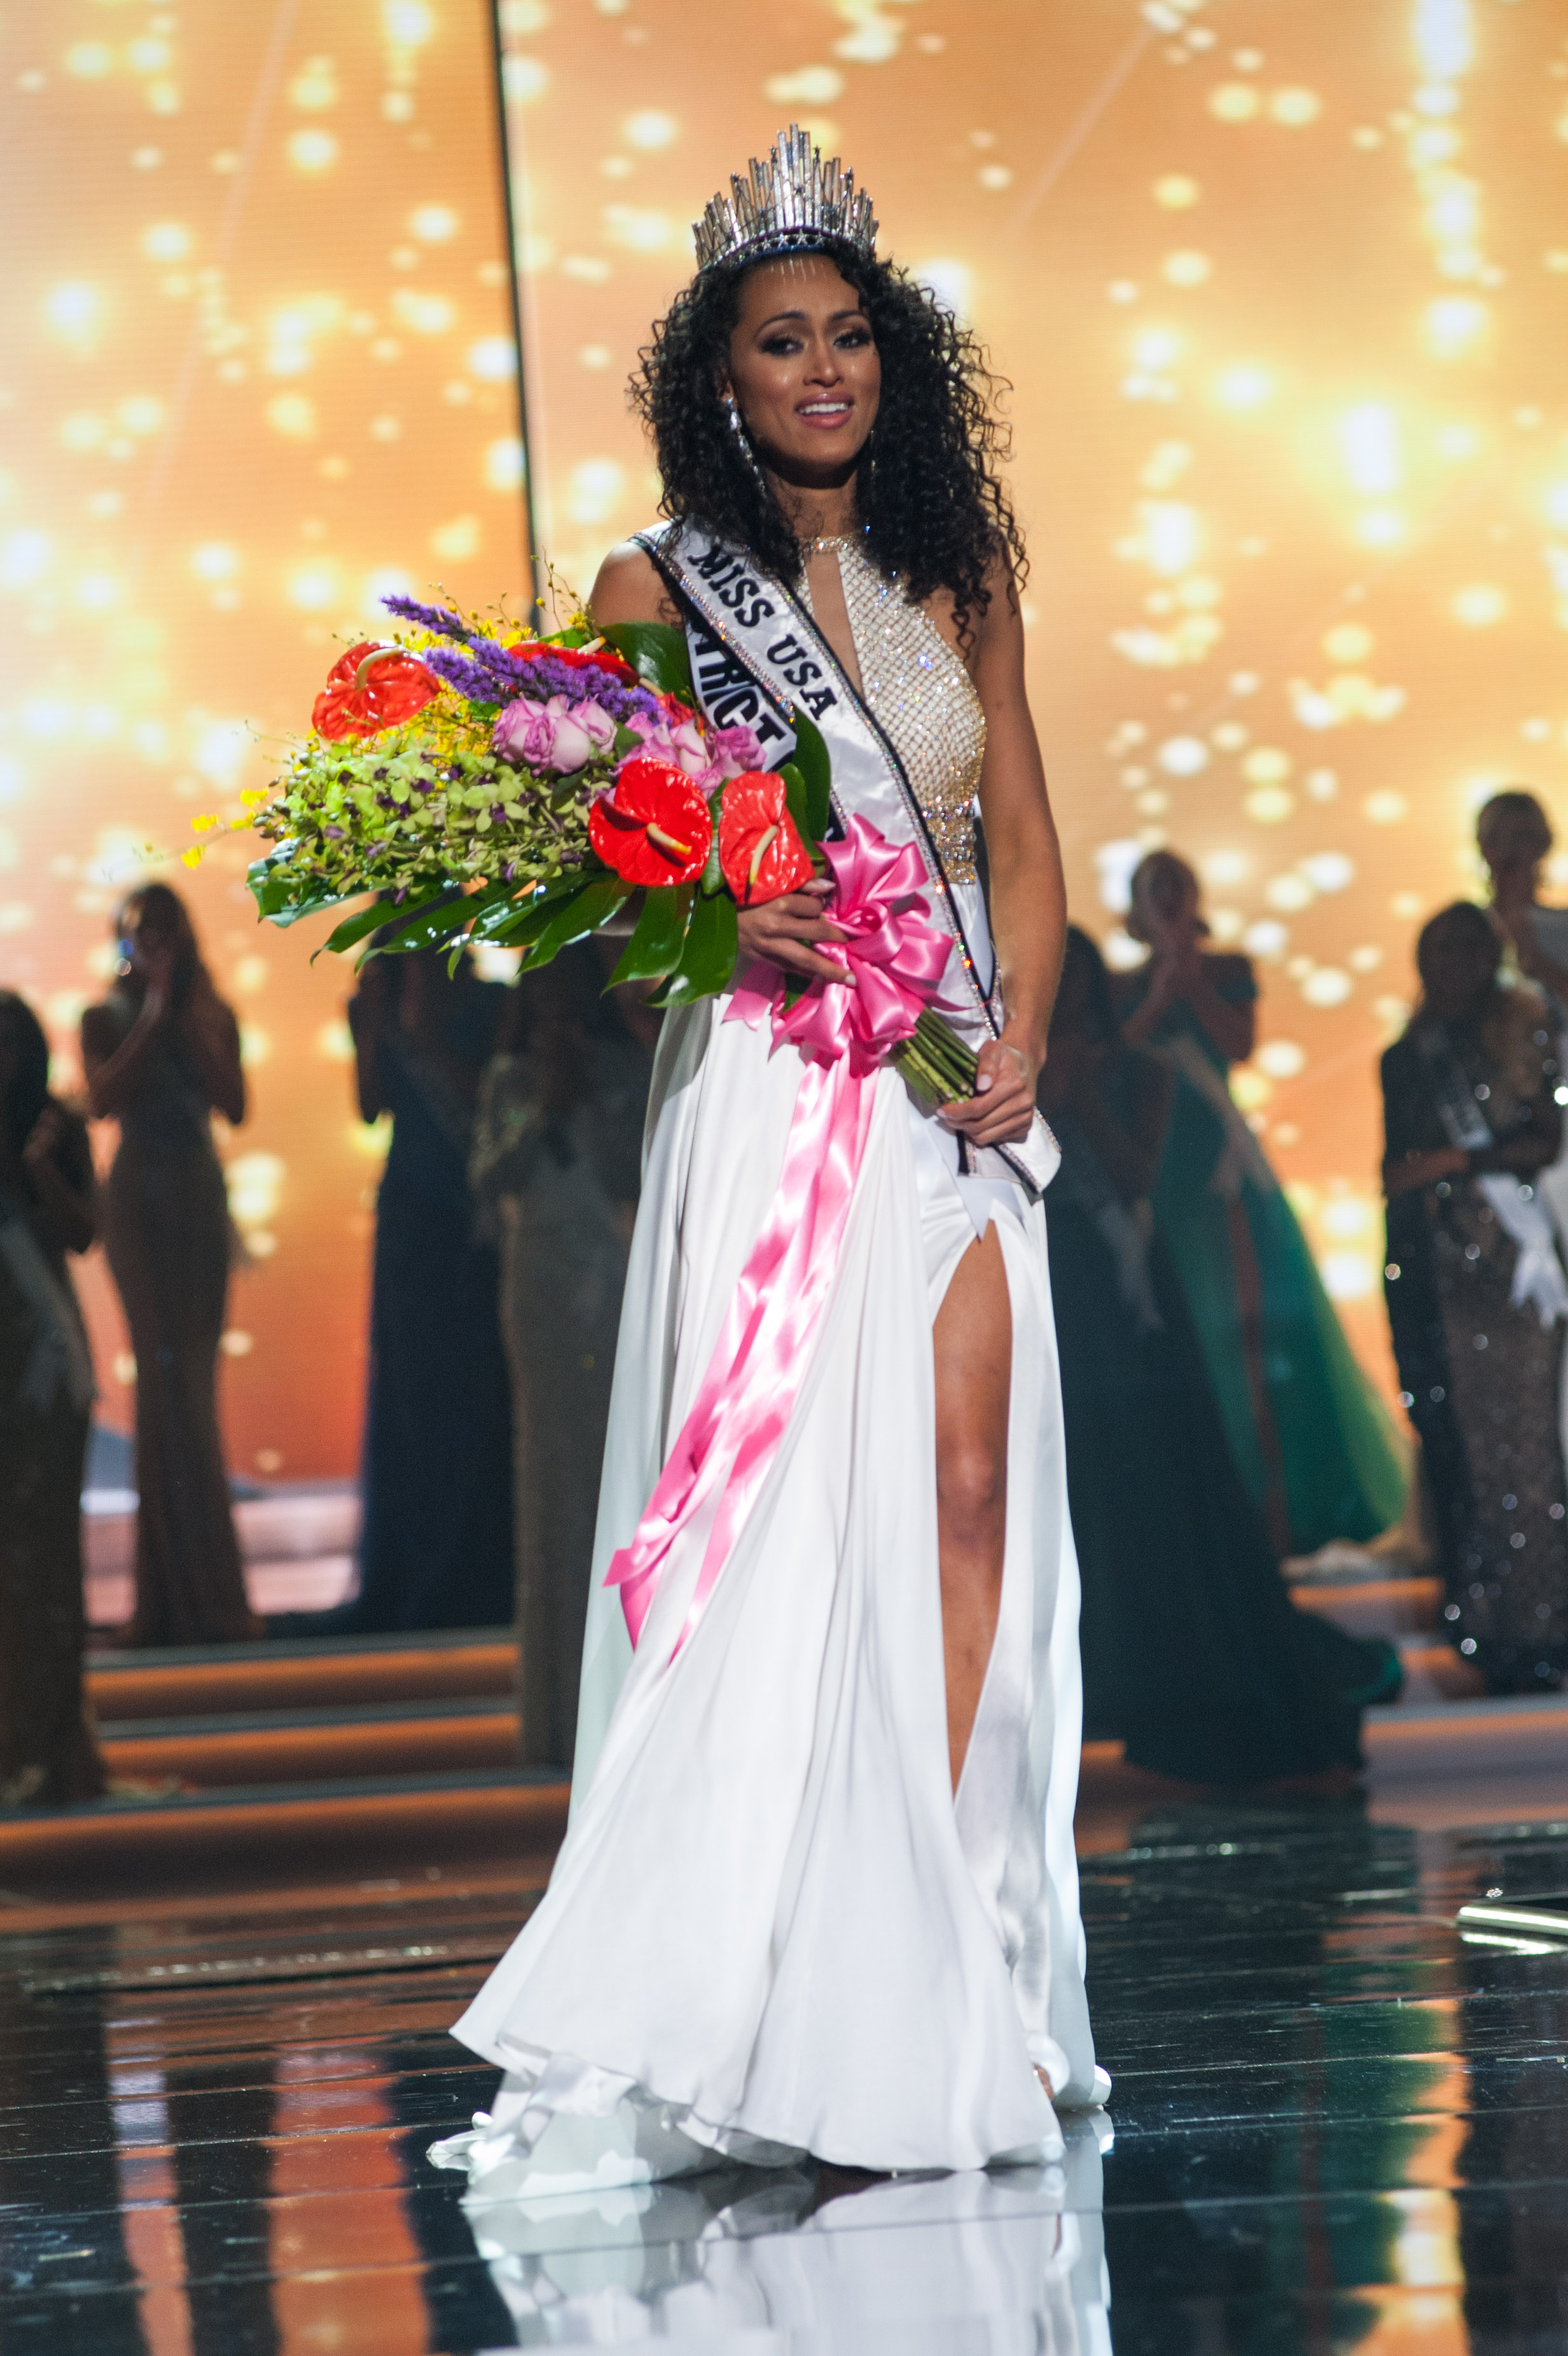 Kára McCullough, Miss District Of Columbia USA 2017. Photo courtesy of Patrick Prather for Miss USA